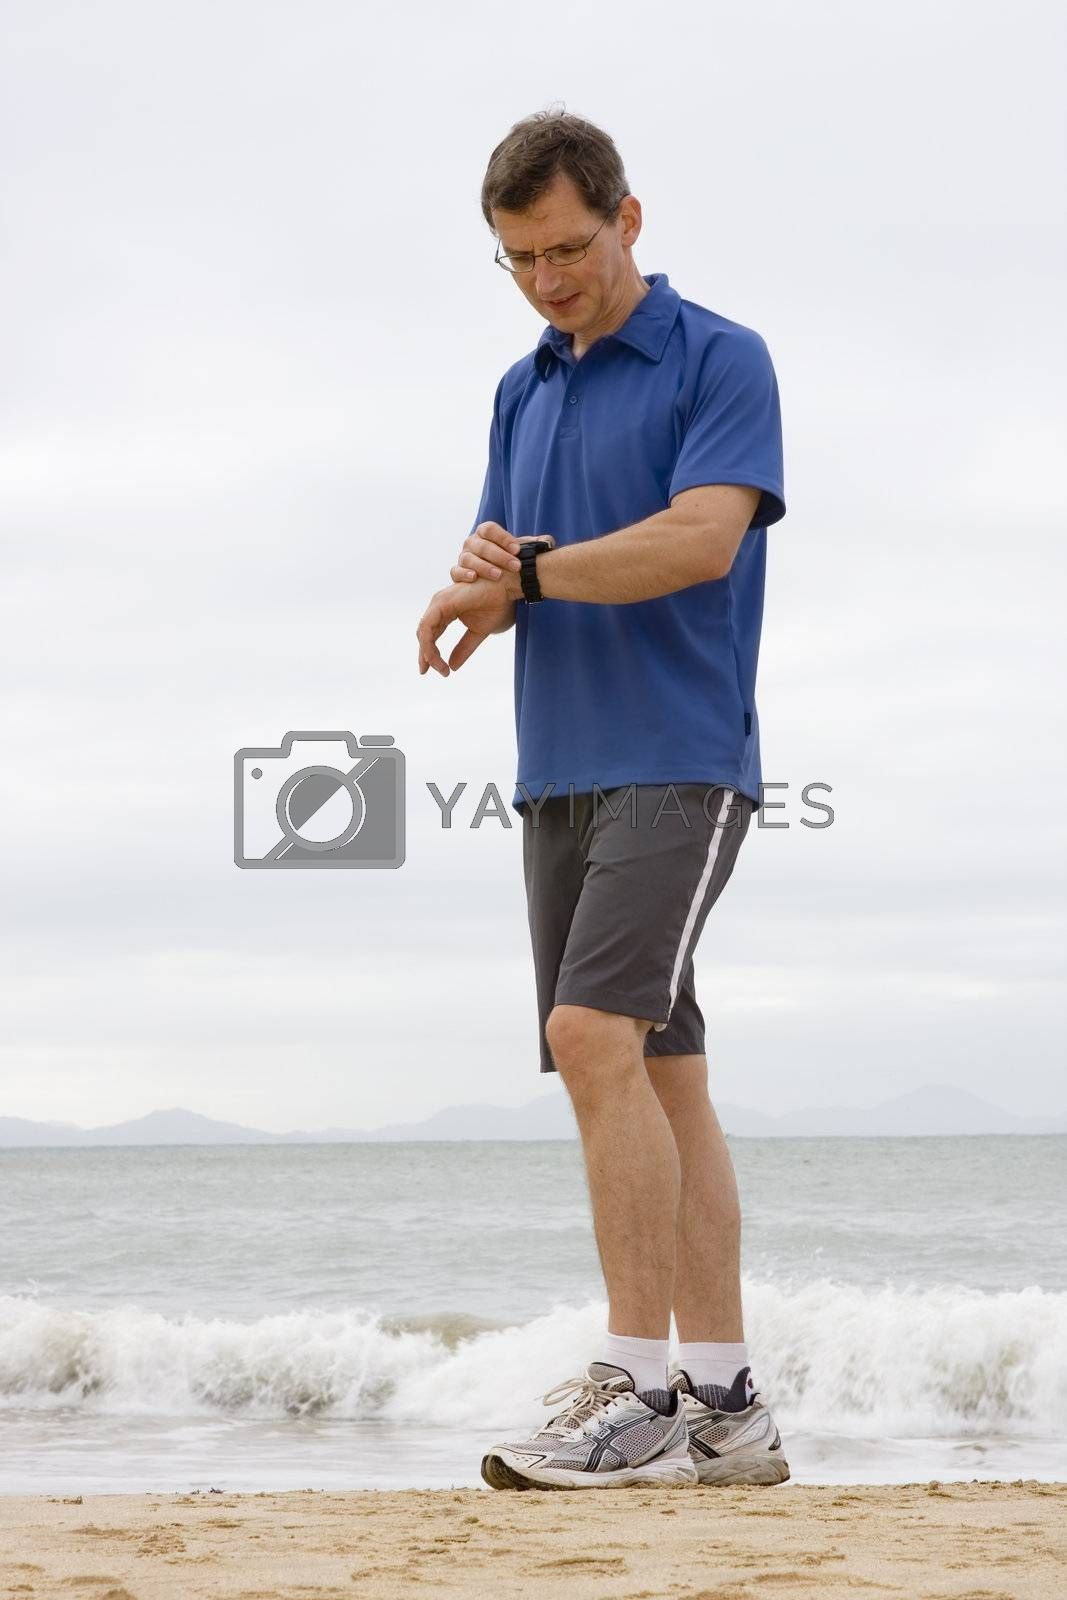 Runner looking at stop watch on a beach